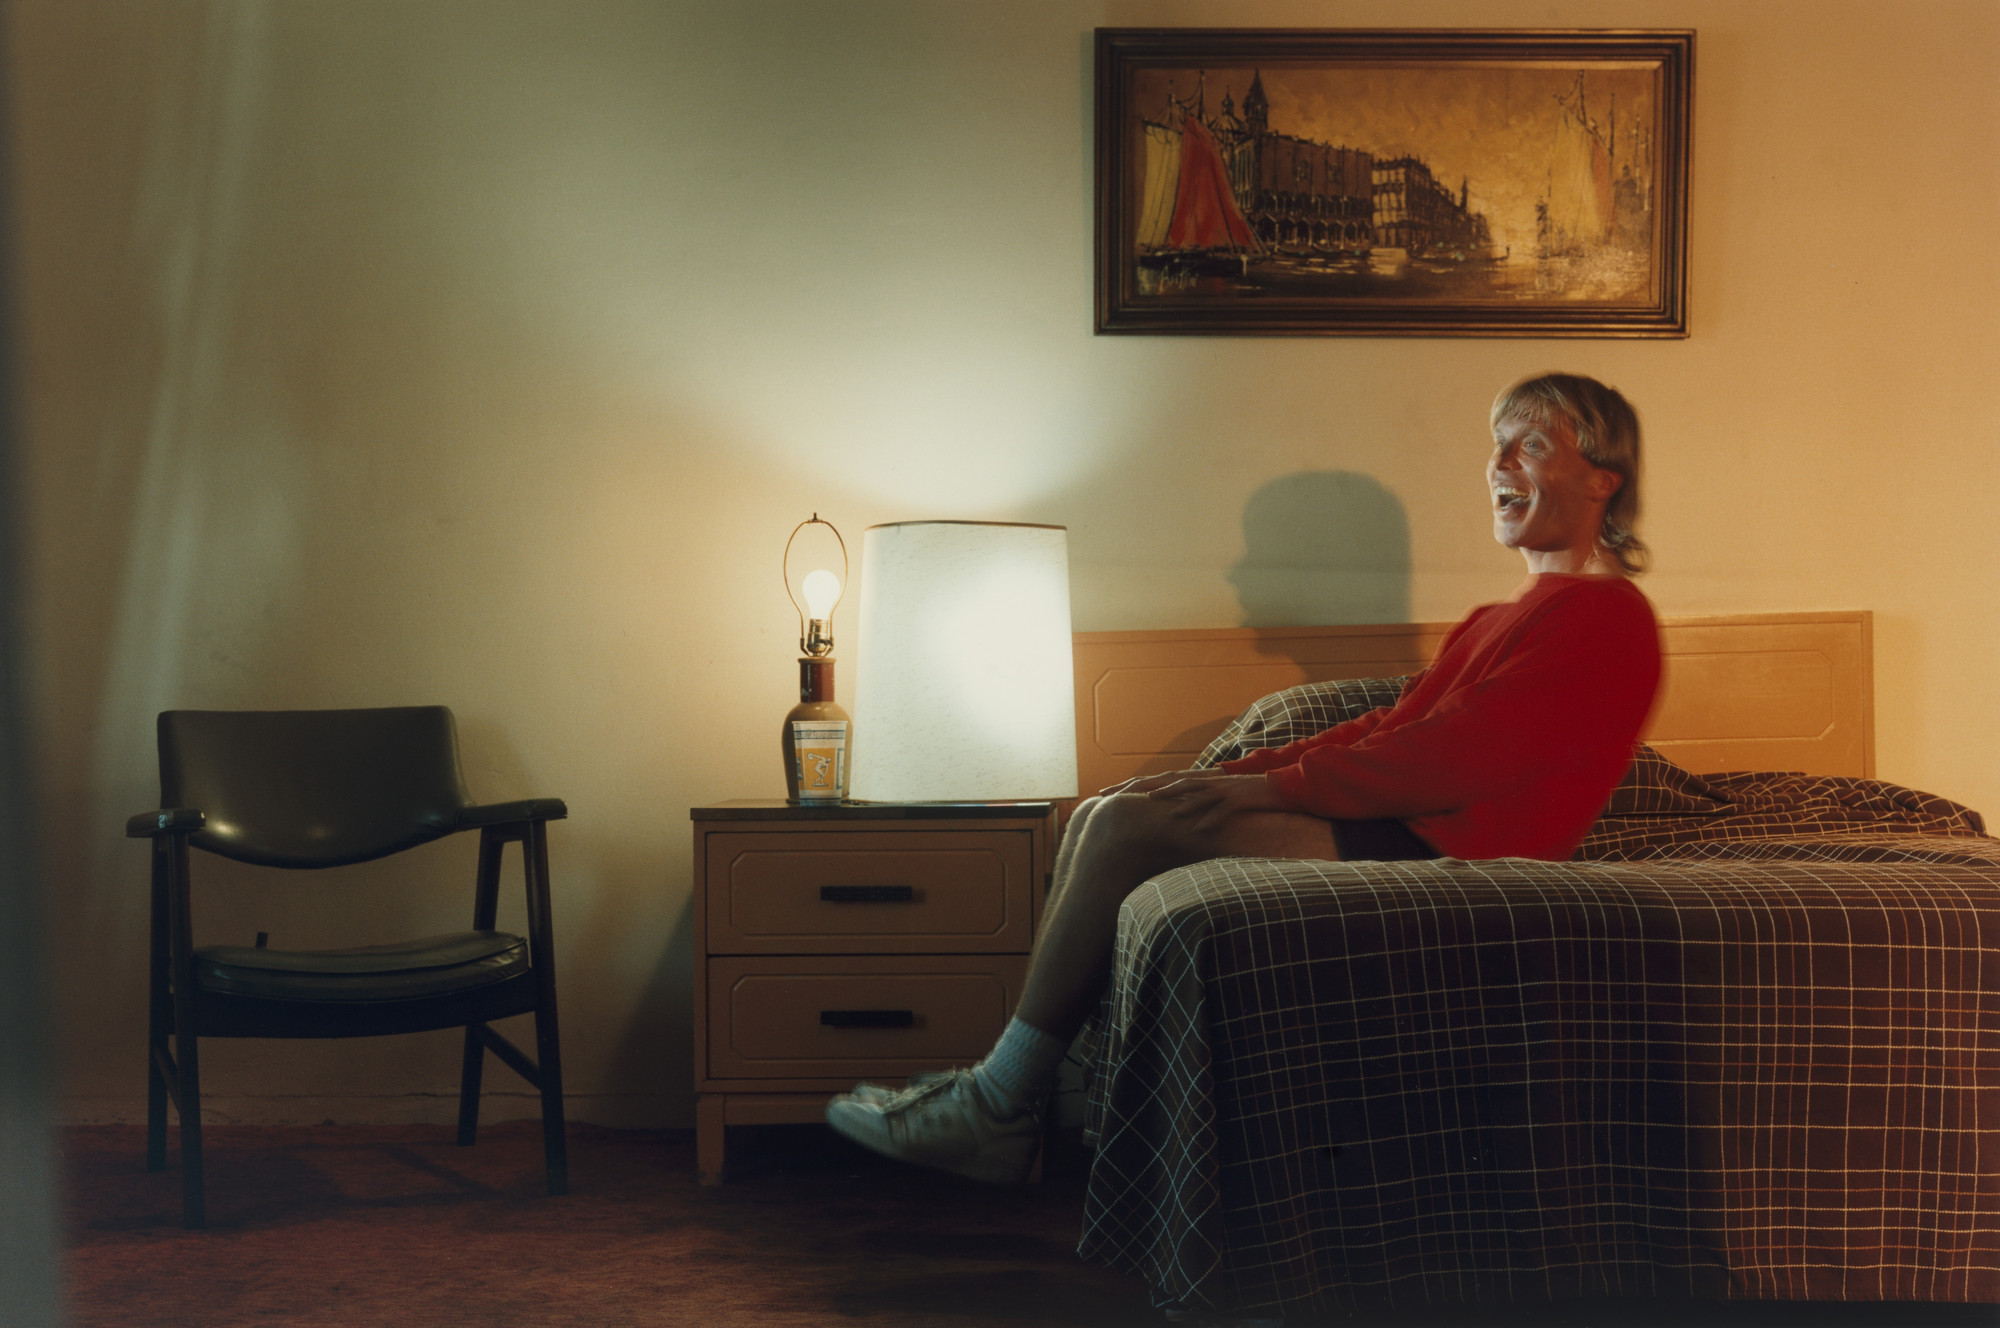 Philip-Lorca diCorcia. Kevin Gordon; 37 years old; Oakland, California; $40. 1990-92